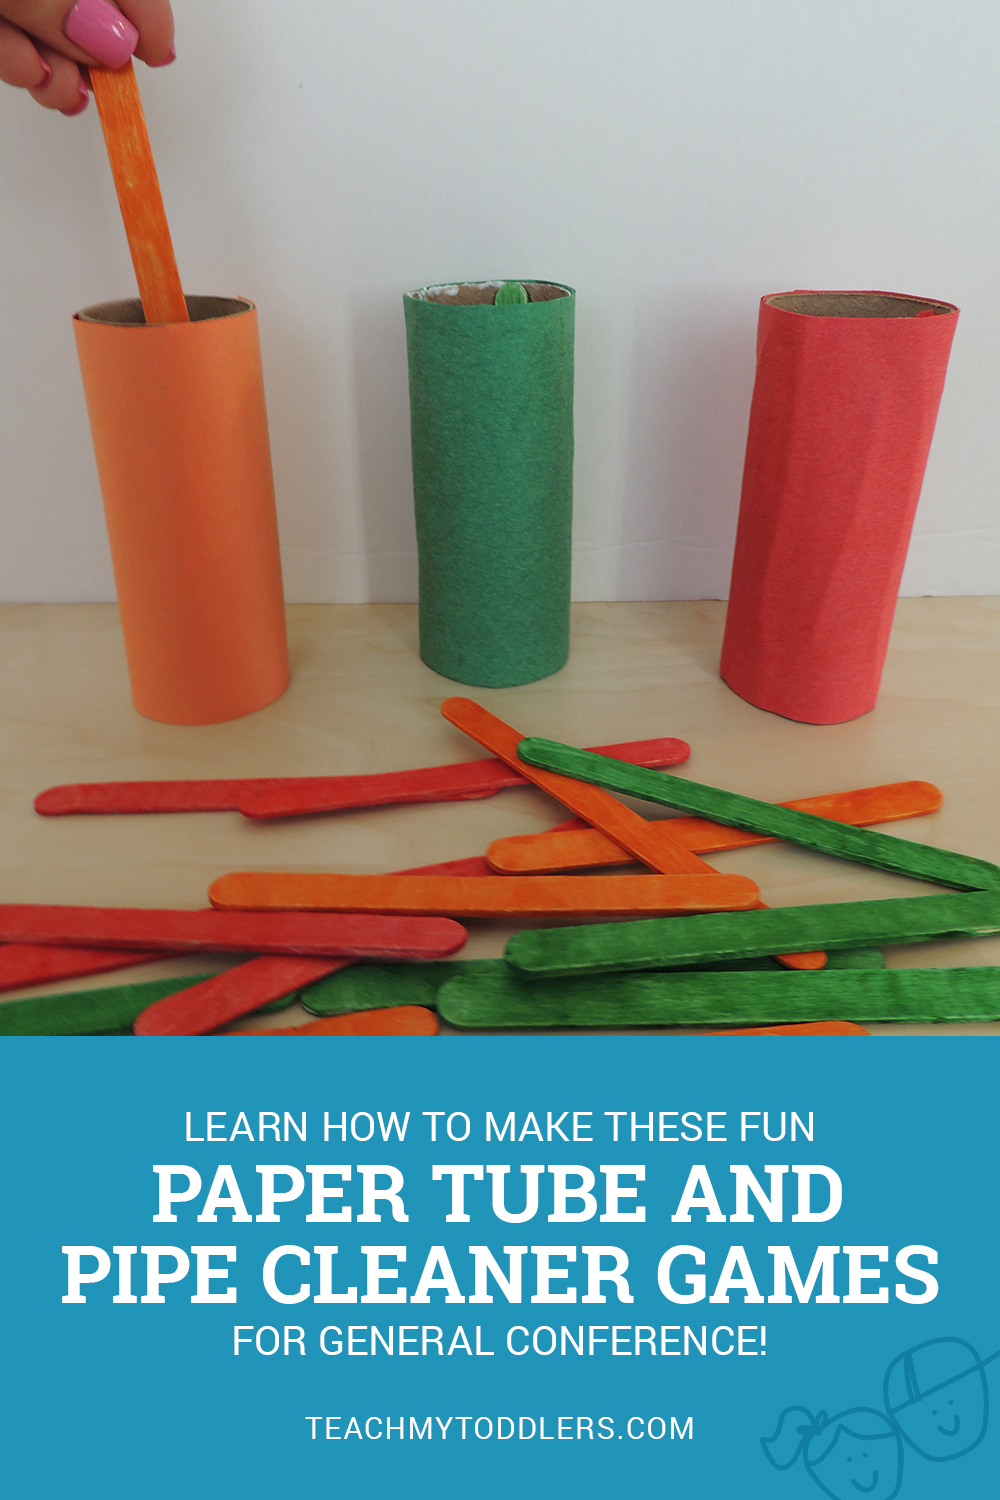 Learn how to make these fun paper tube and pipe cleaner games for your toddler for General Conference!